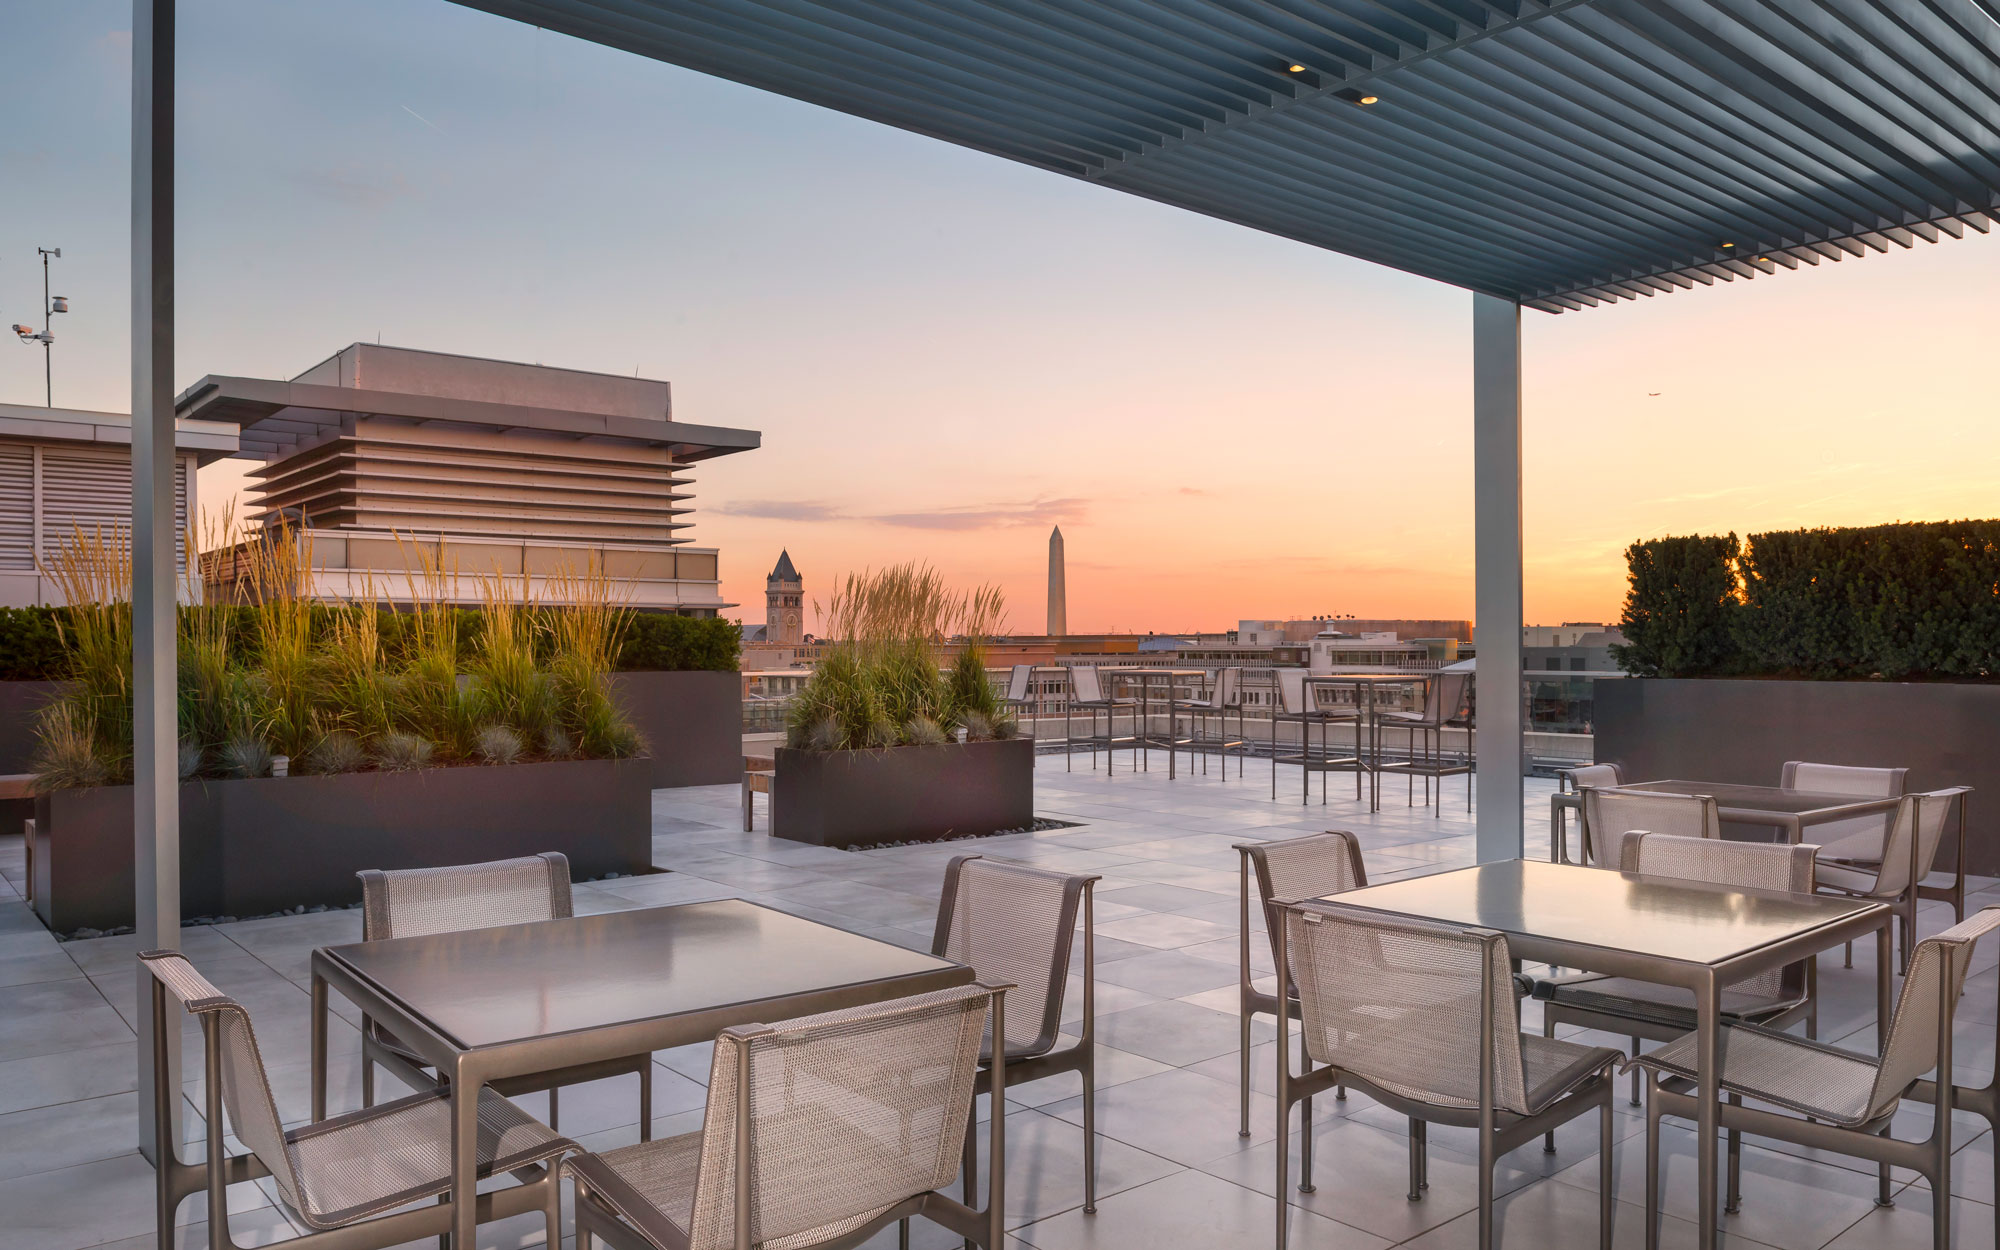 799 Ninth | Rooftop Lounge and Terrace